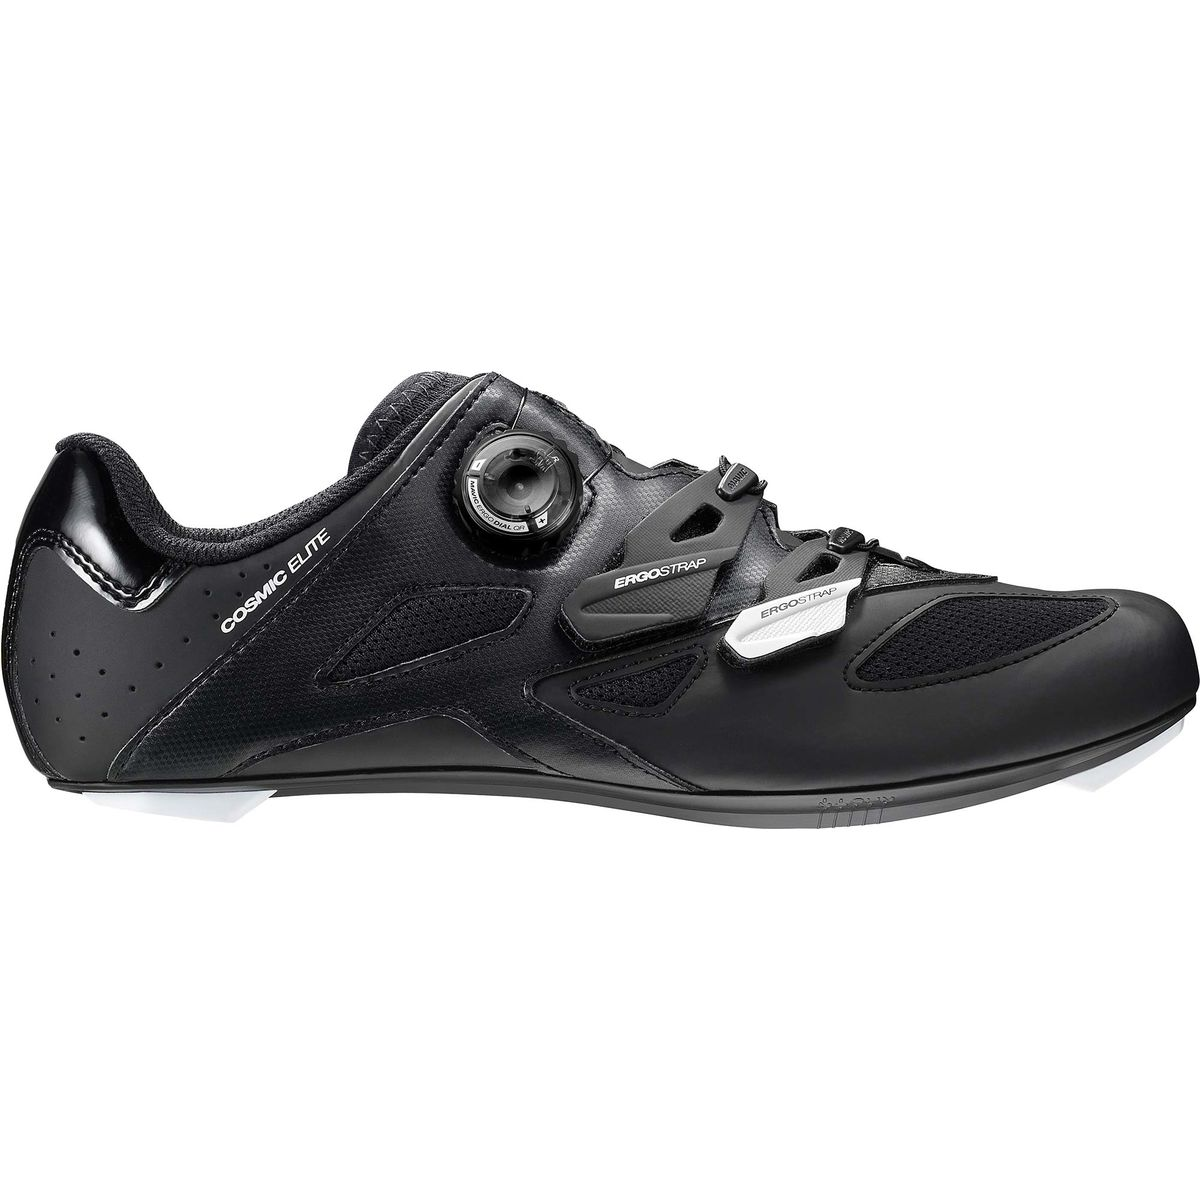 COSMIC ELITE road shoes